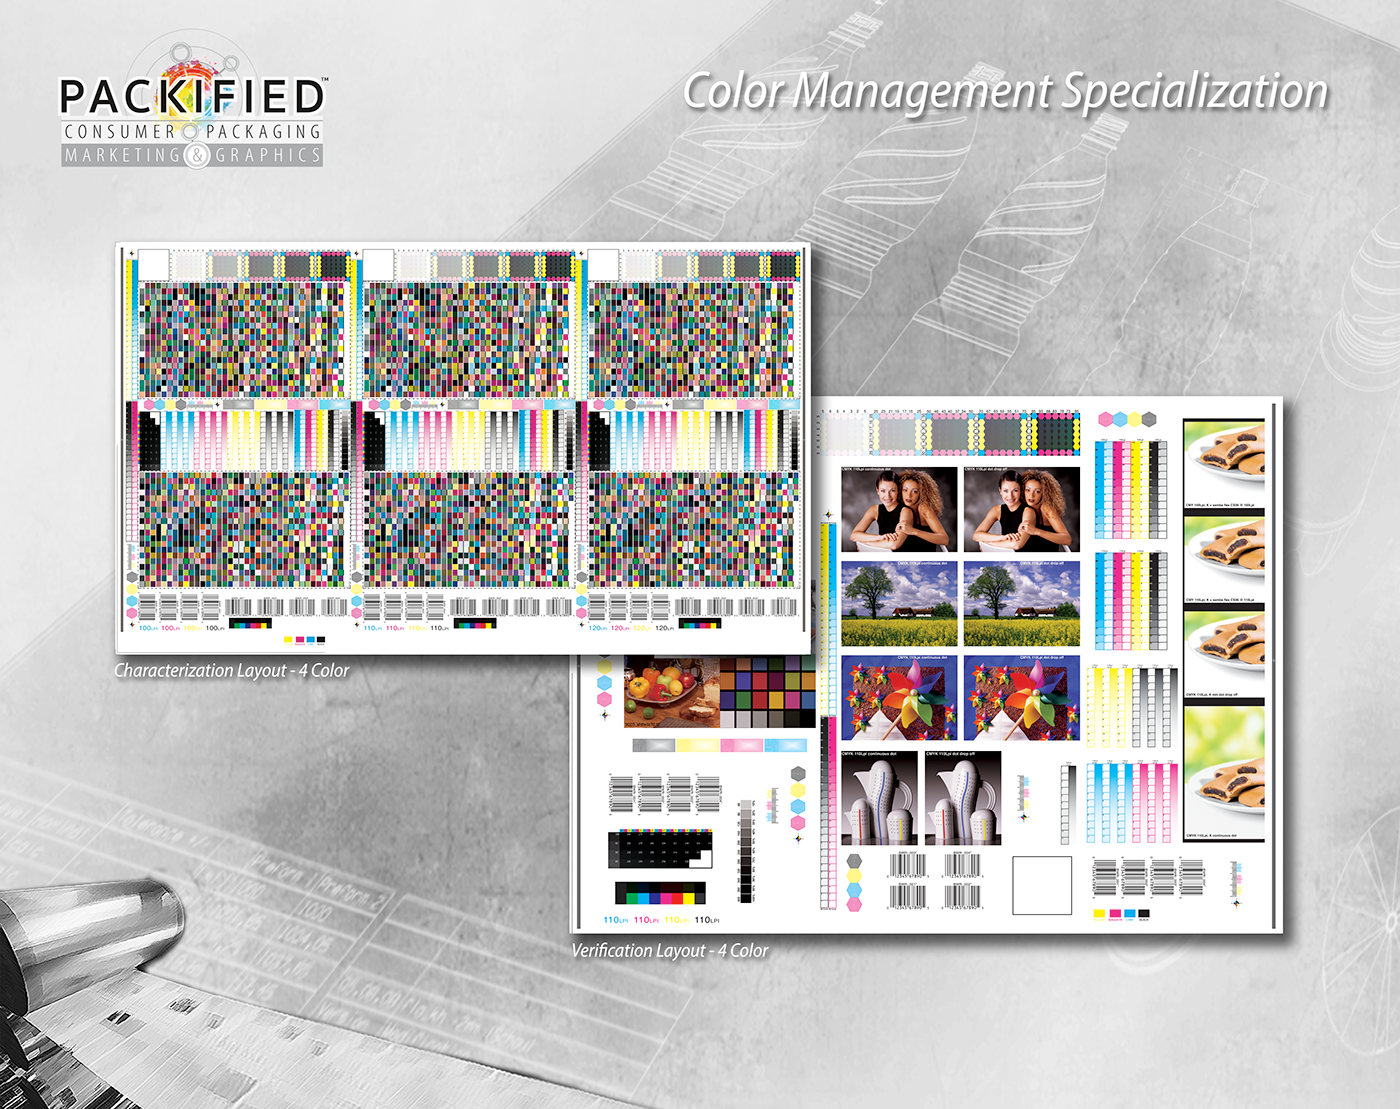 Color Management Specialization